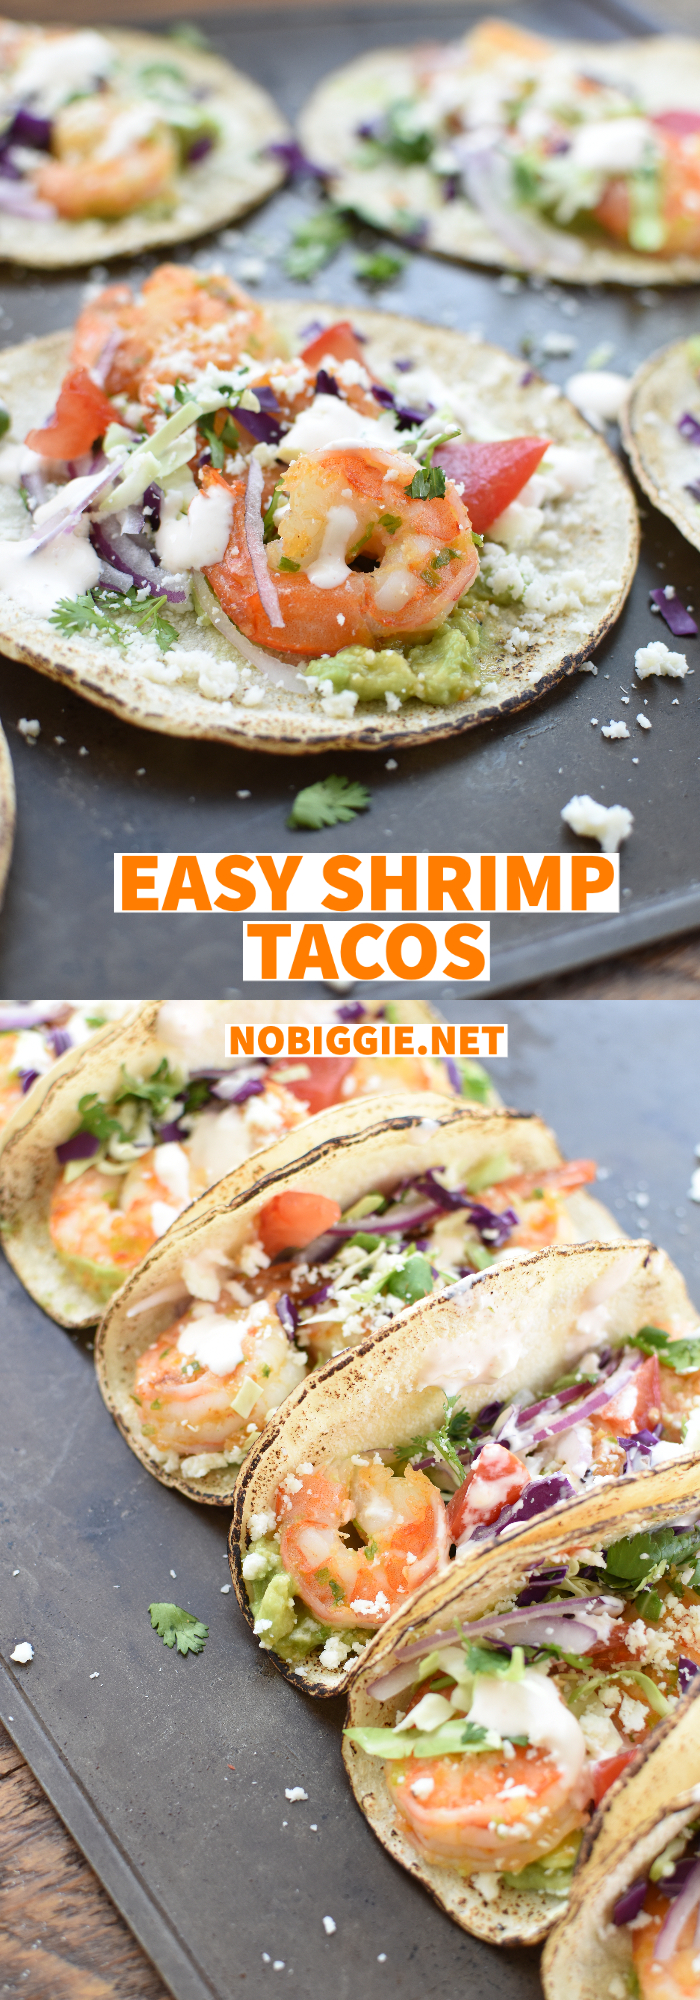 the best shrimp tacos | NoBiggie.net